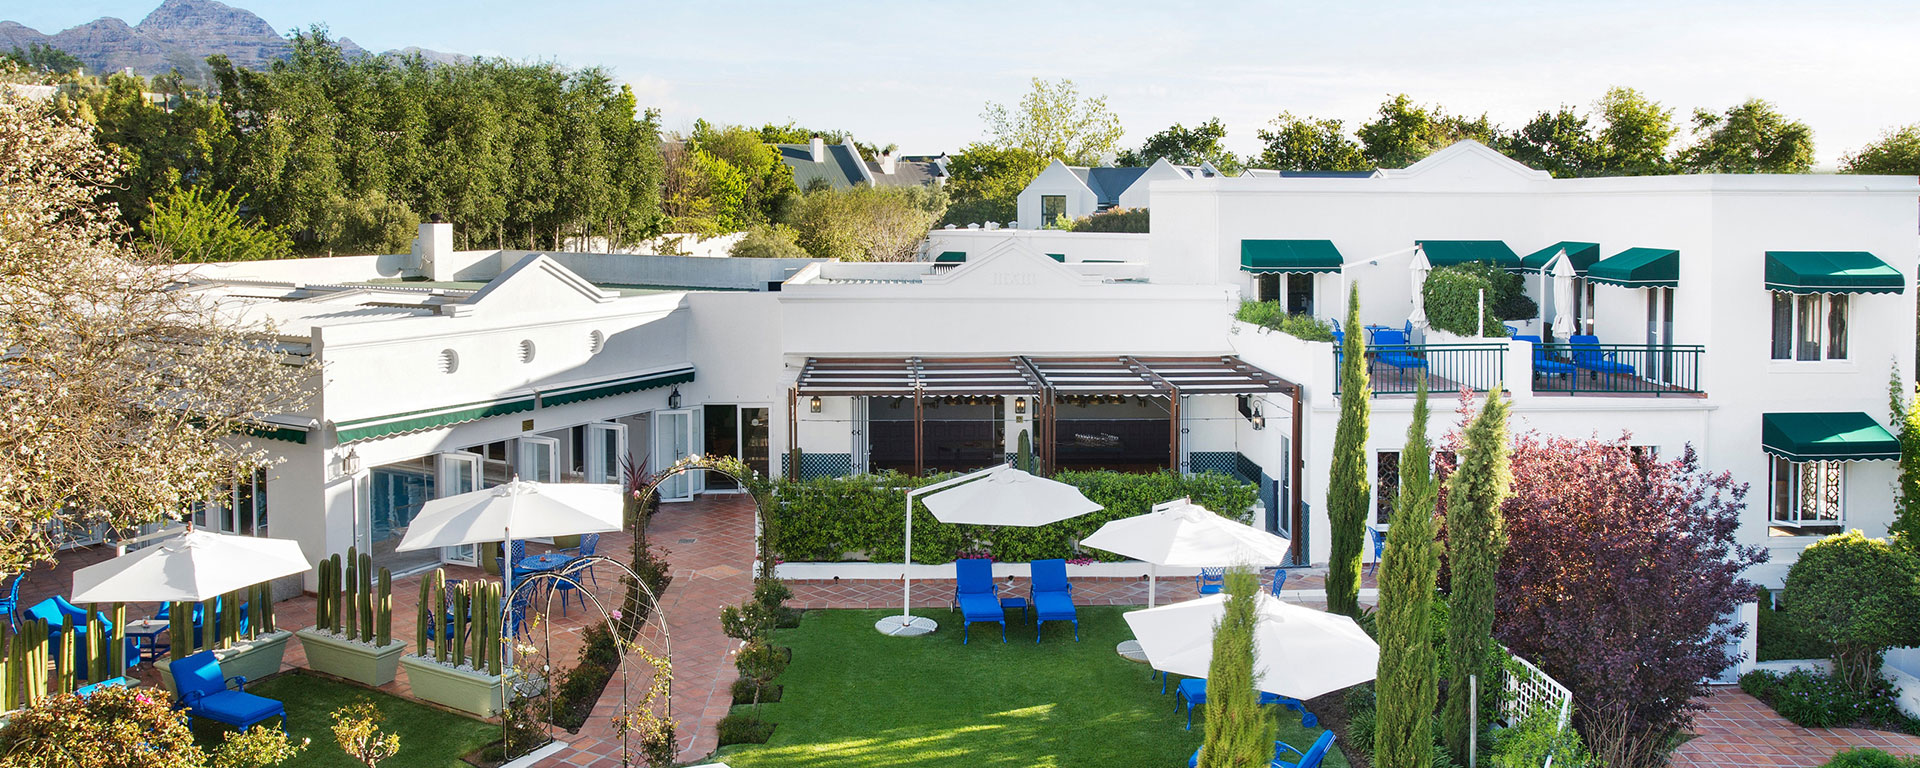 Majeka house 5 star boutique hotel in stellenbosch for Five star boutique